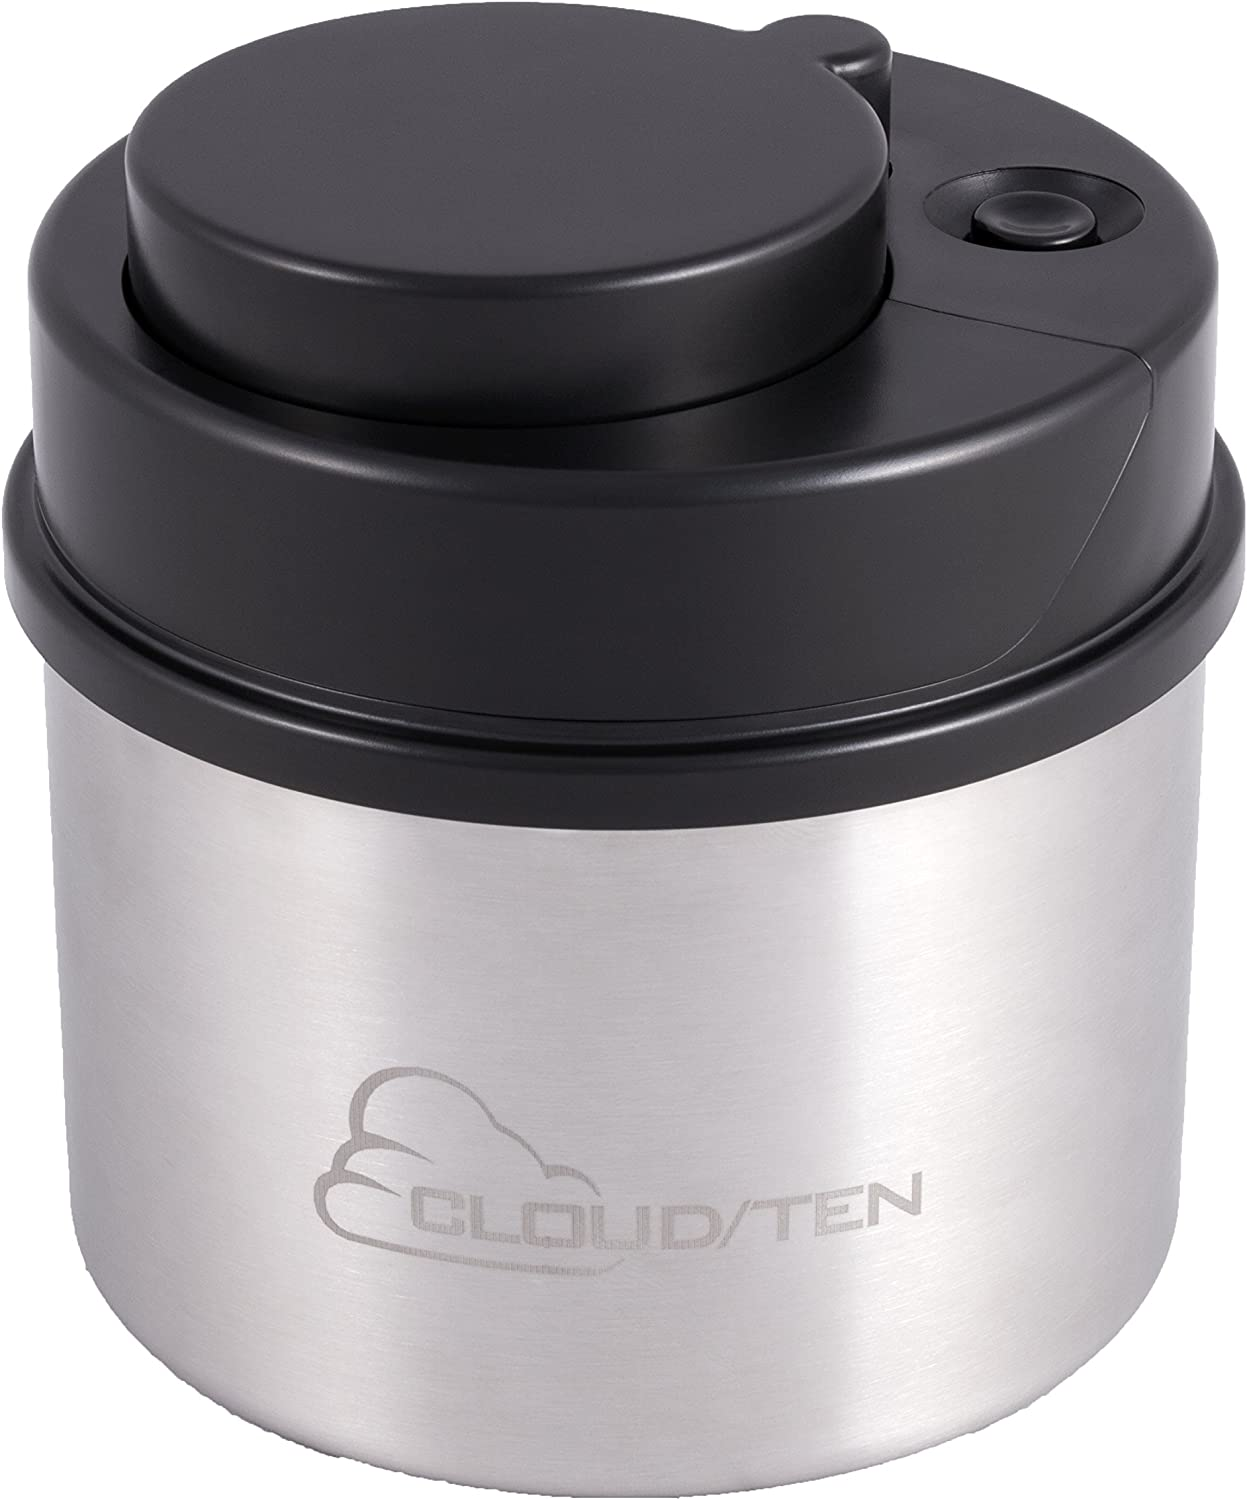 CLOUDTEN DankBank Herb Case Container with Airtight Vacuum Seal, Smell Proof Odor Resistant Herb Storage Jar Comfortably Keeps 2 Ounces of Herbs Fresh